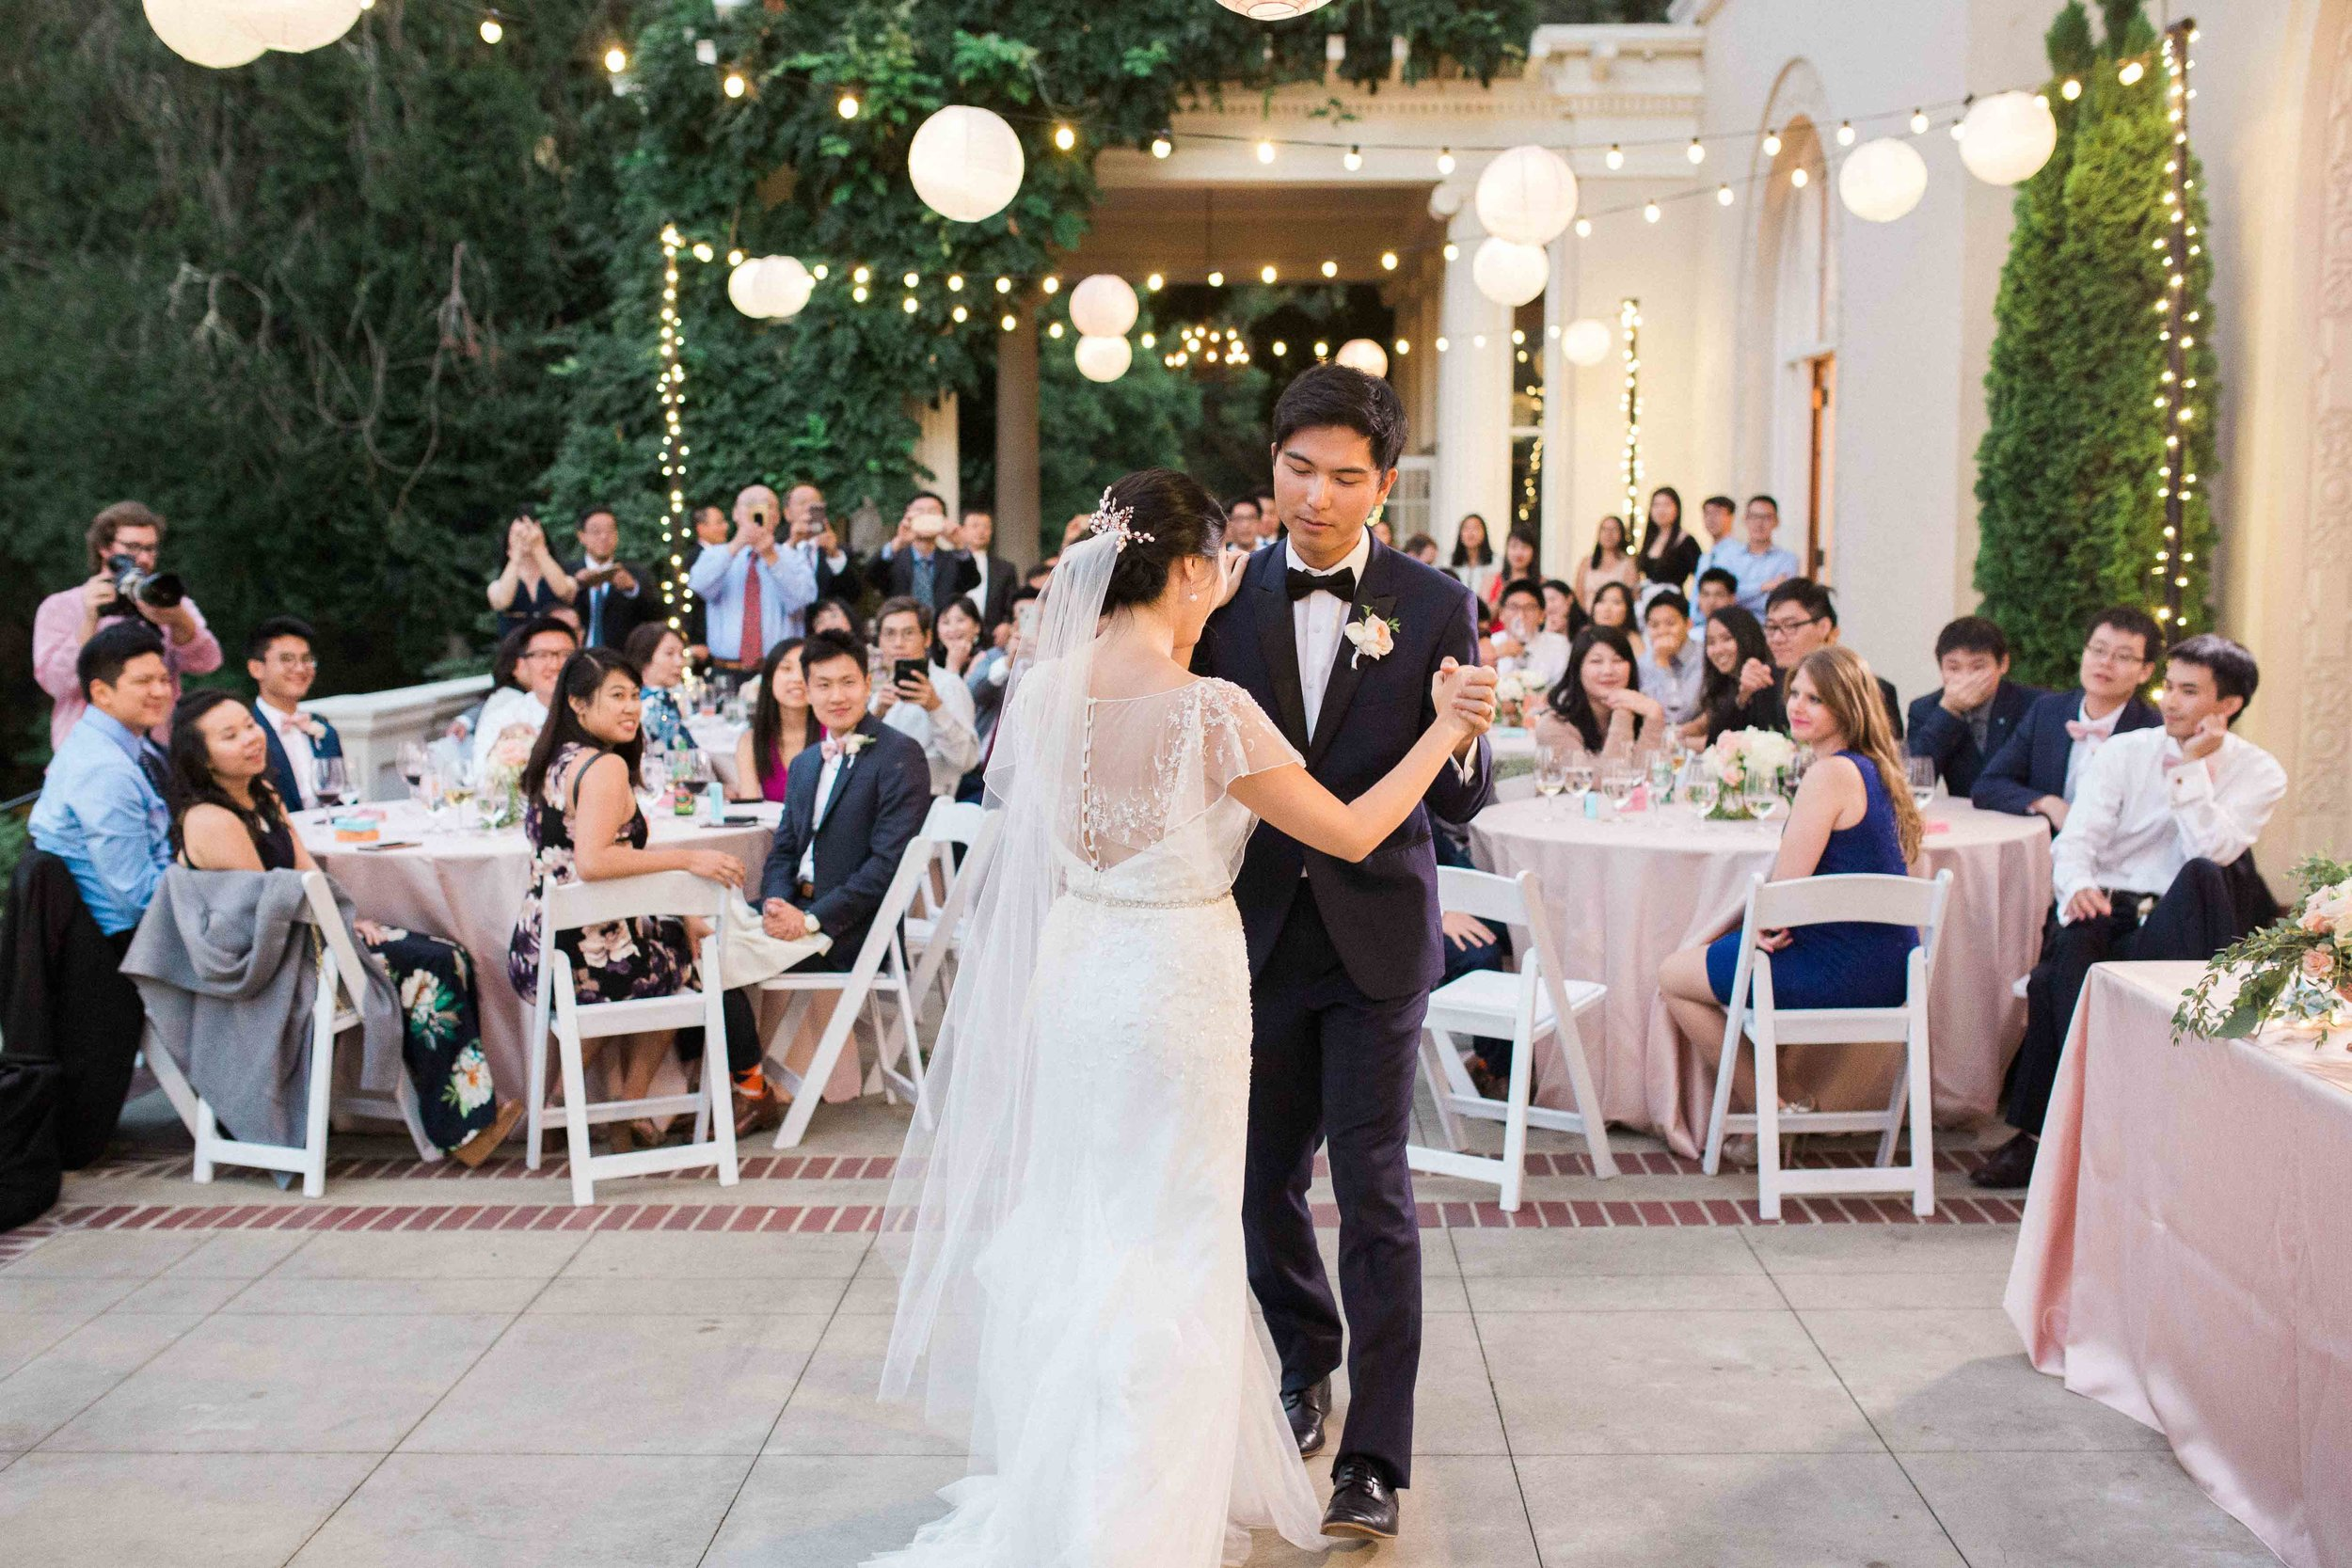 Villa_Montalvo_Wedding_Photographer_Videographer_San_Francisco181.jpg